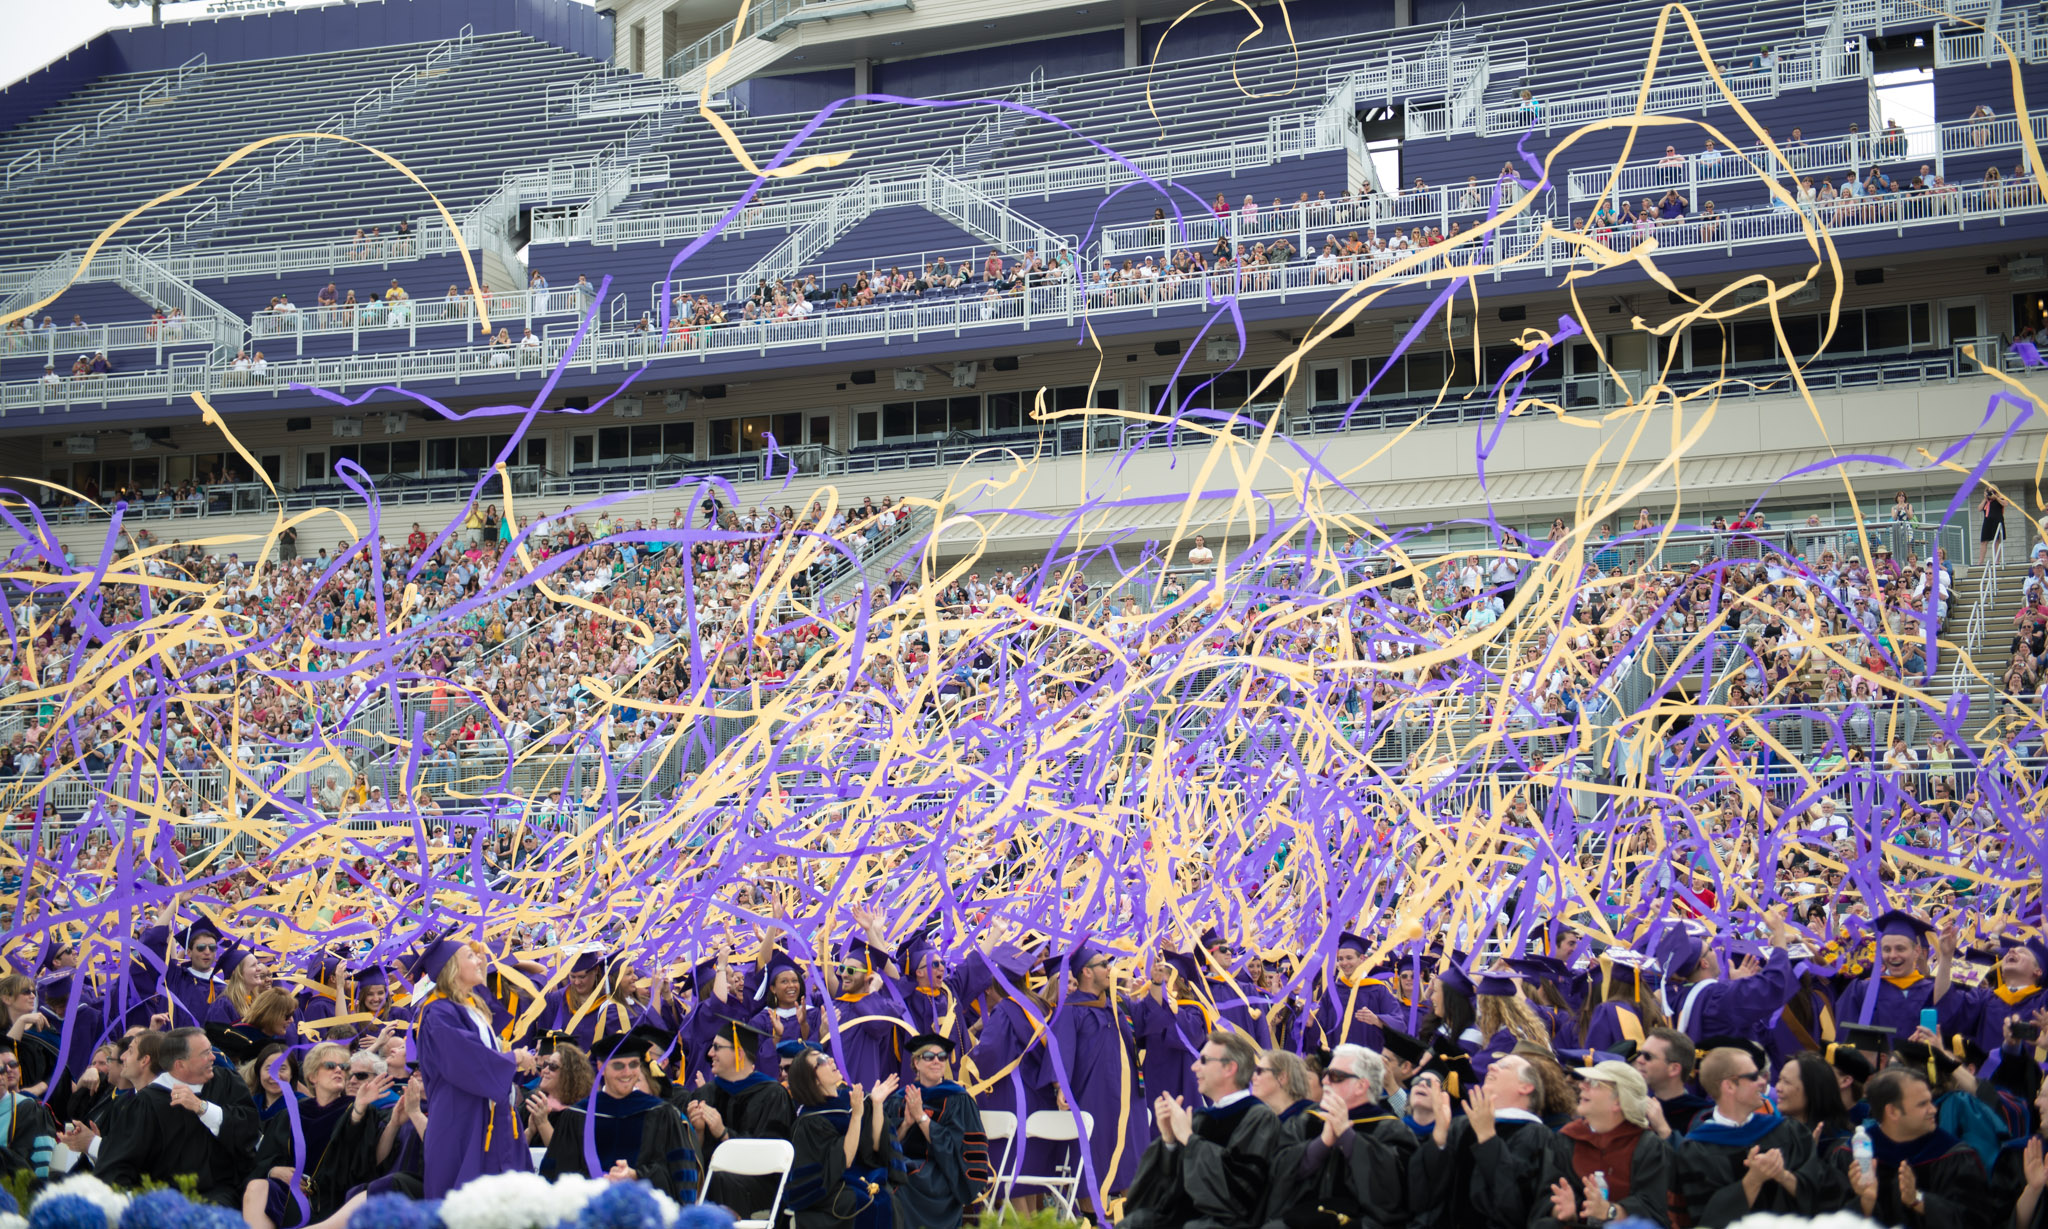 Class of 2014 graduates throw purple and gold streamers in celebration.